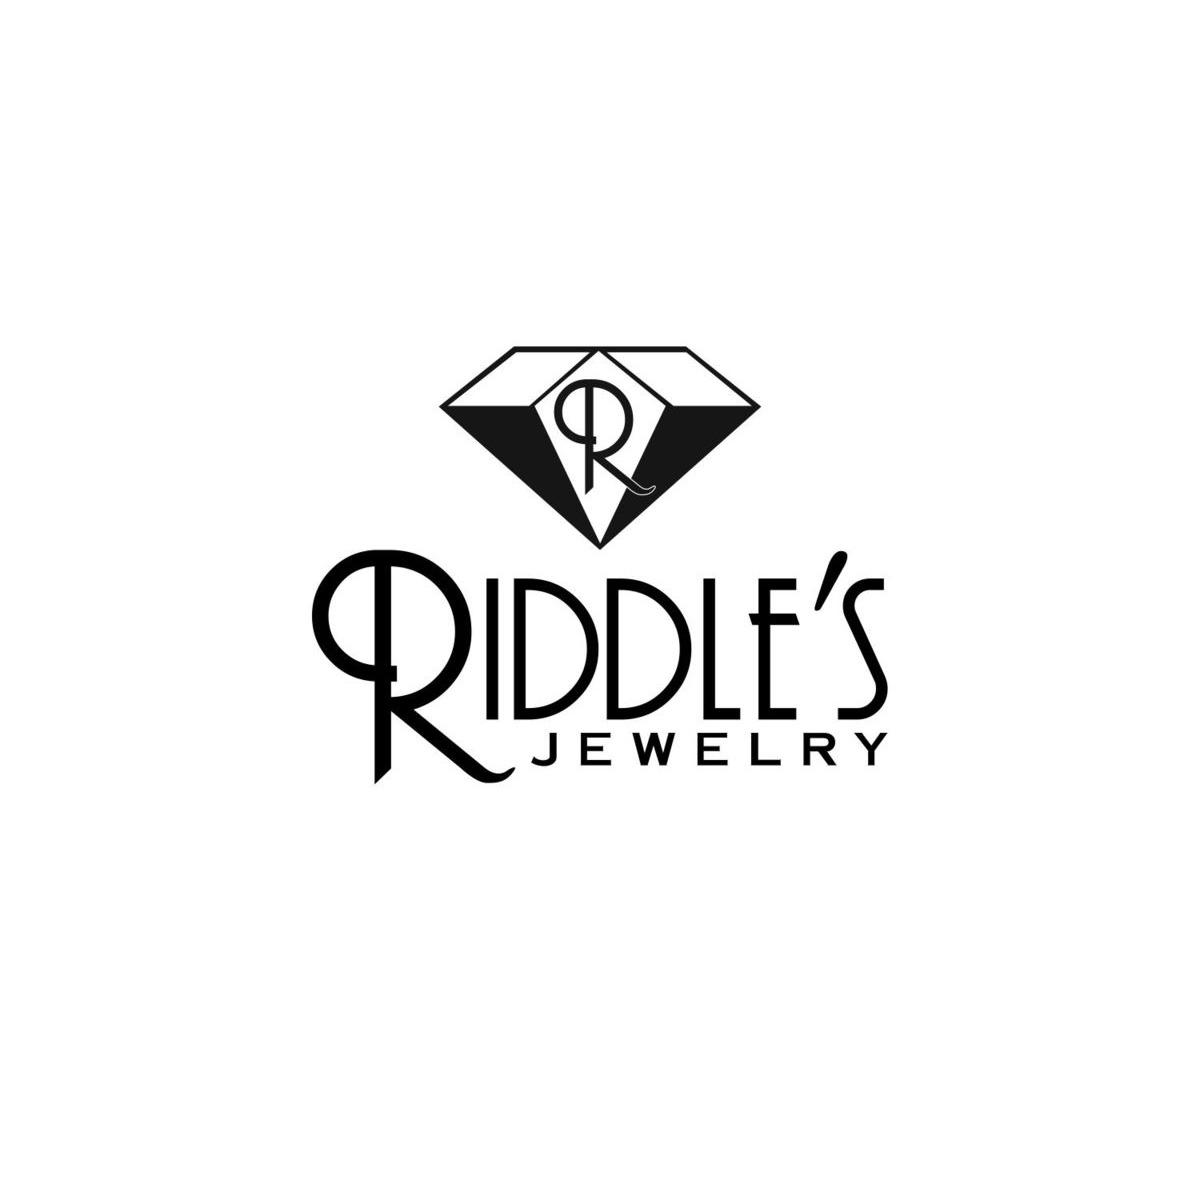 Riddle's Jewelry - Hays, KS - Jewelry & Watch Repair